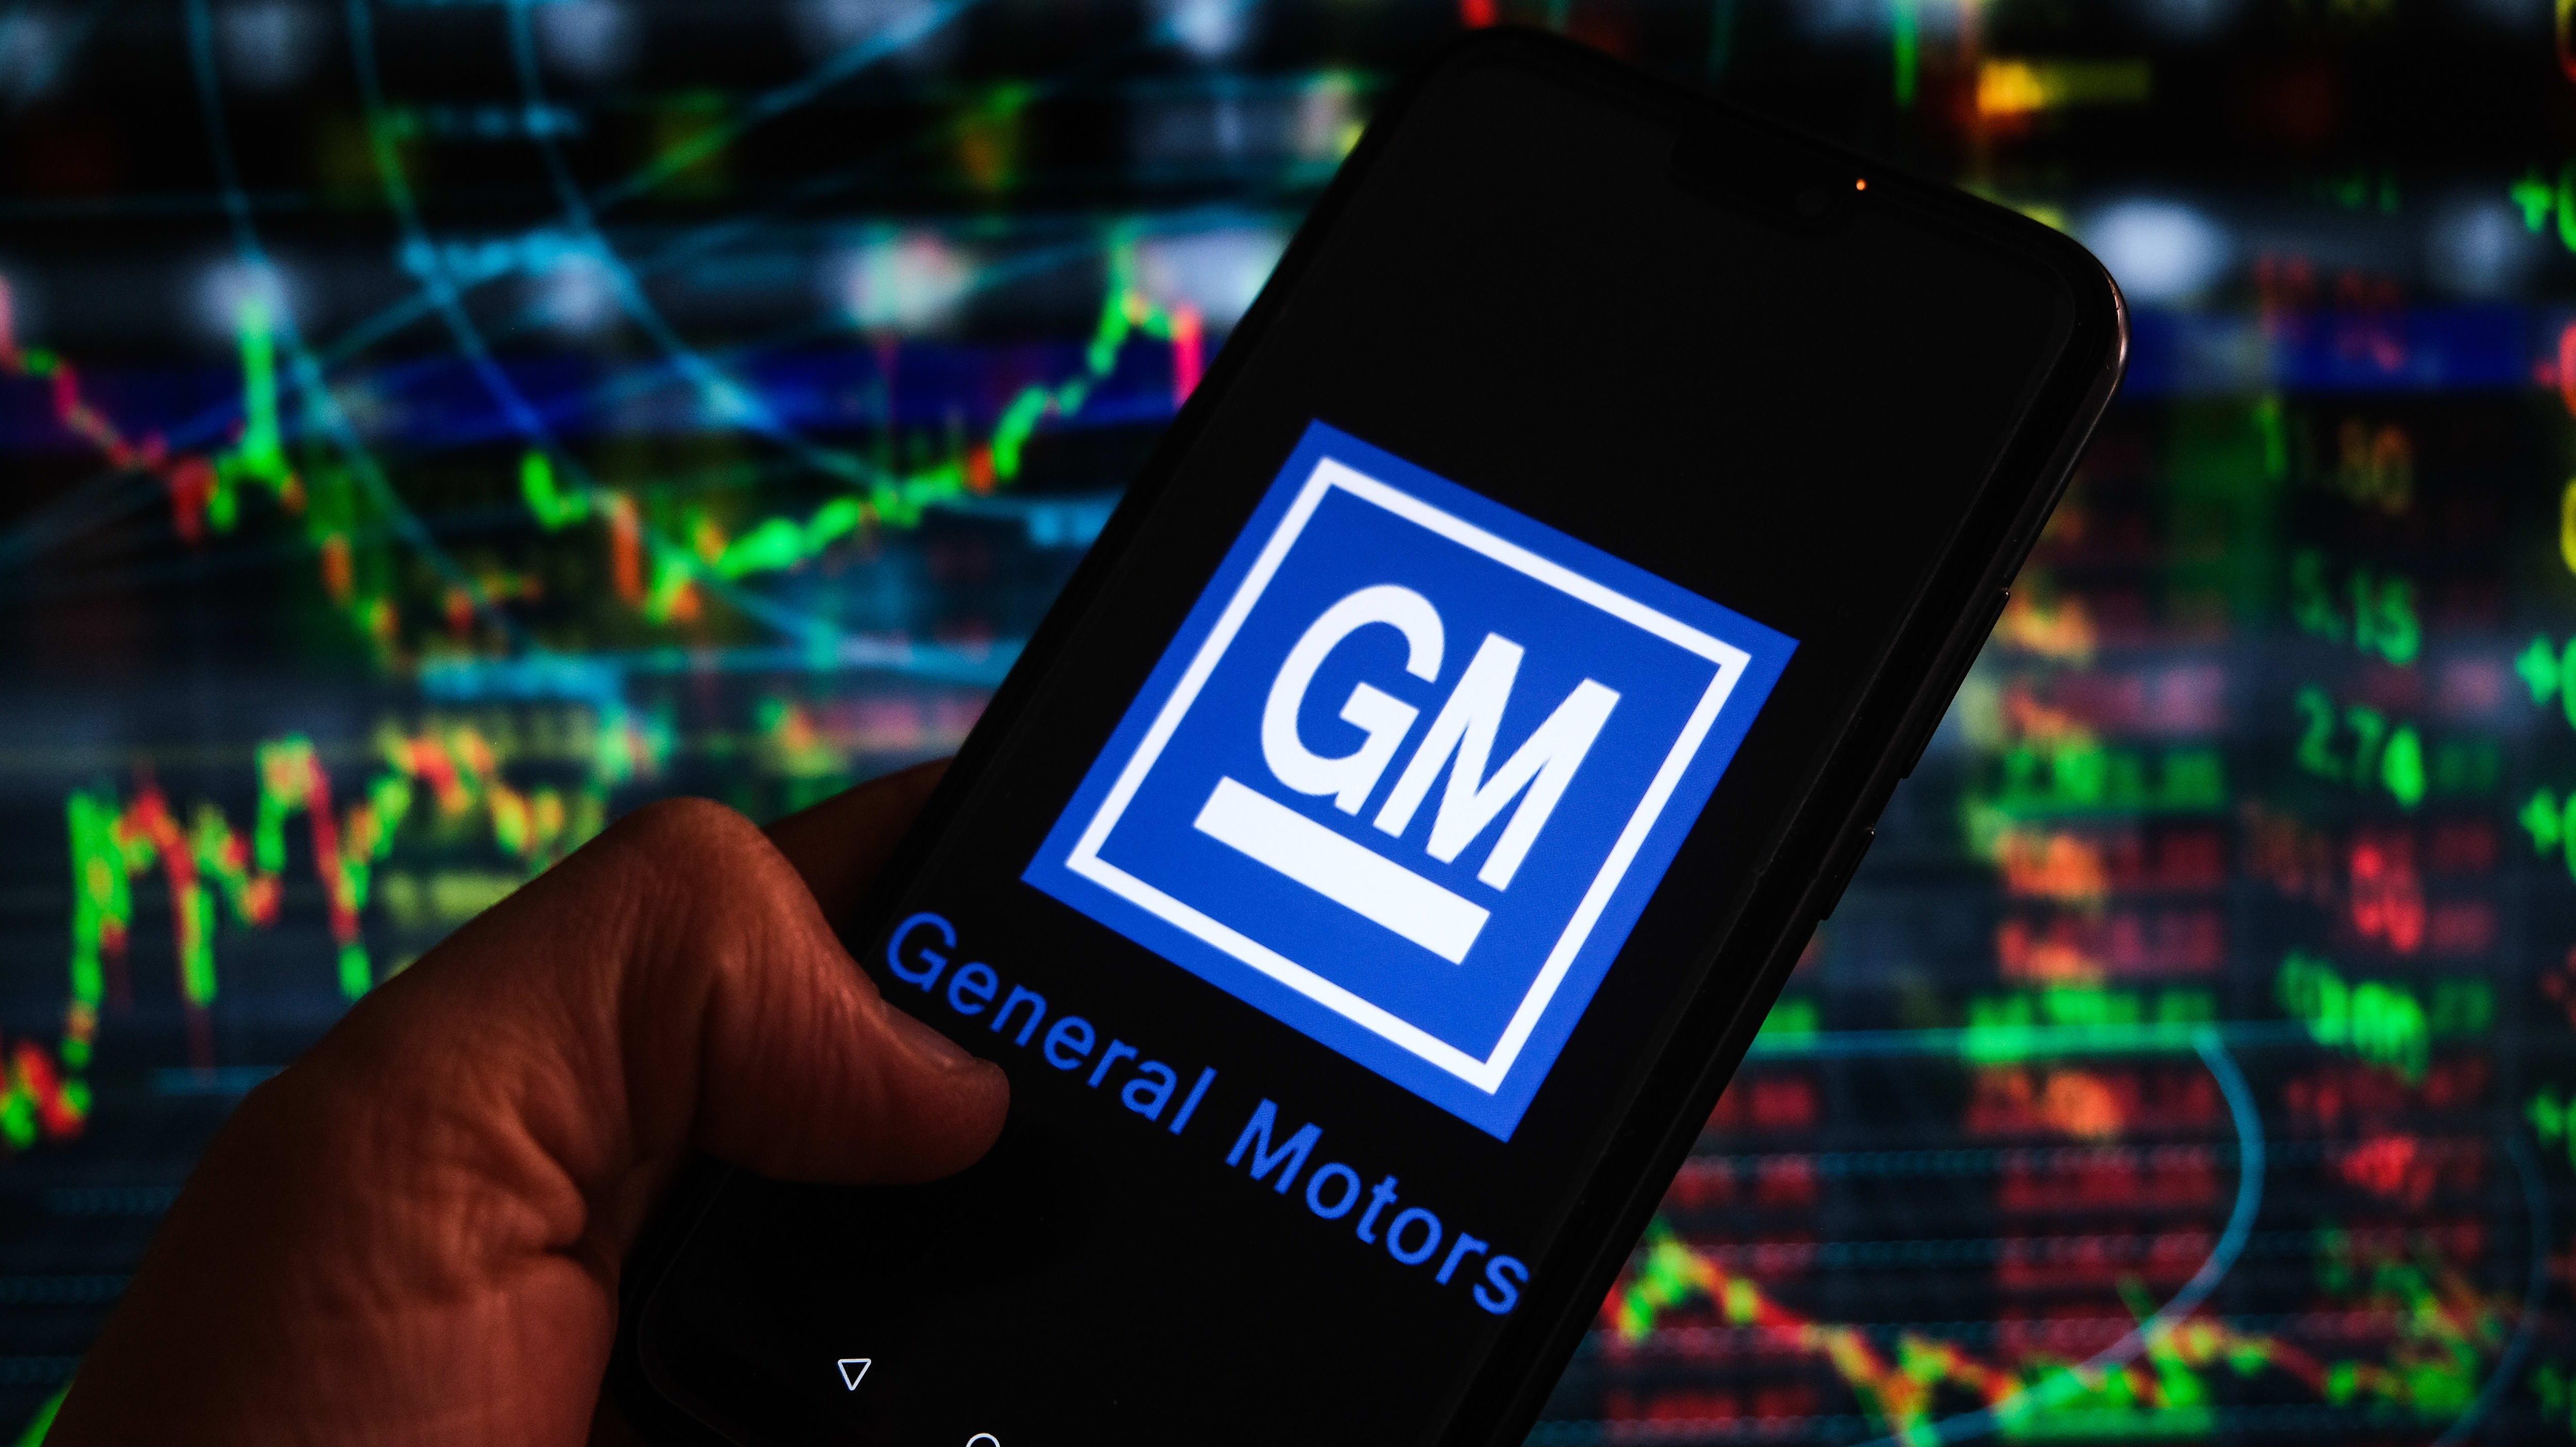 General Motors said Wednesday spending on EVs and autonomous vehicles by 30% to $35 billion